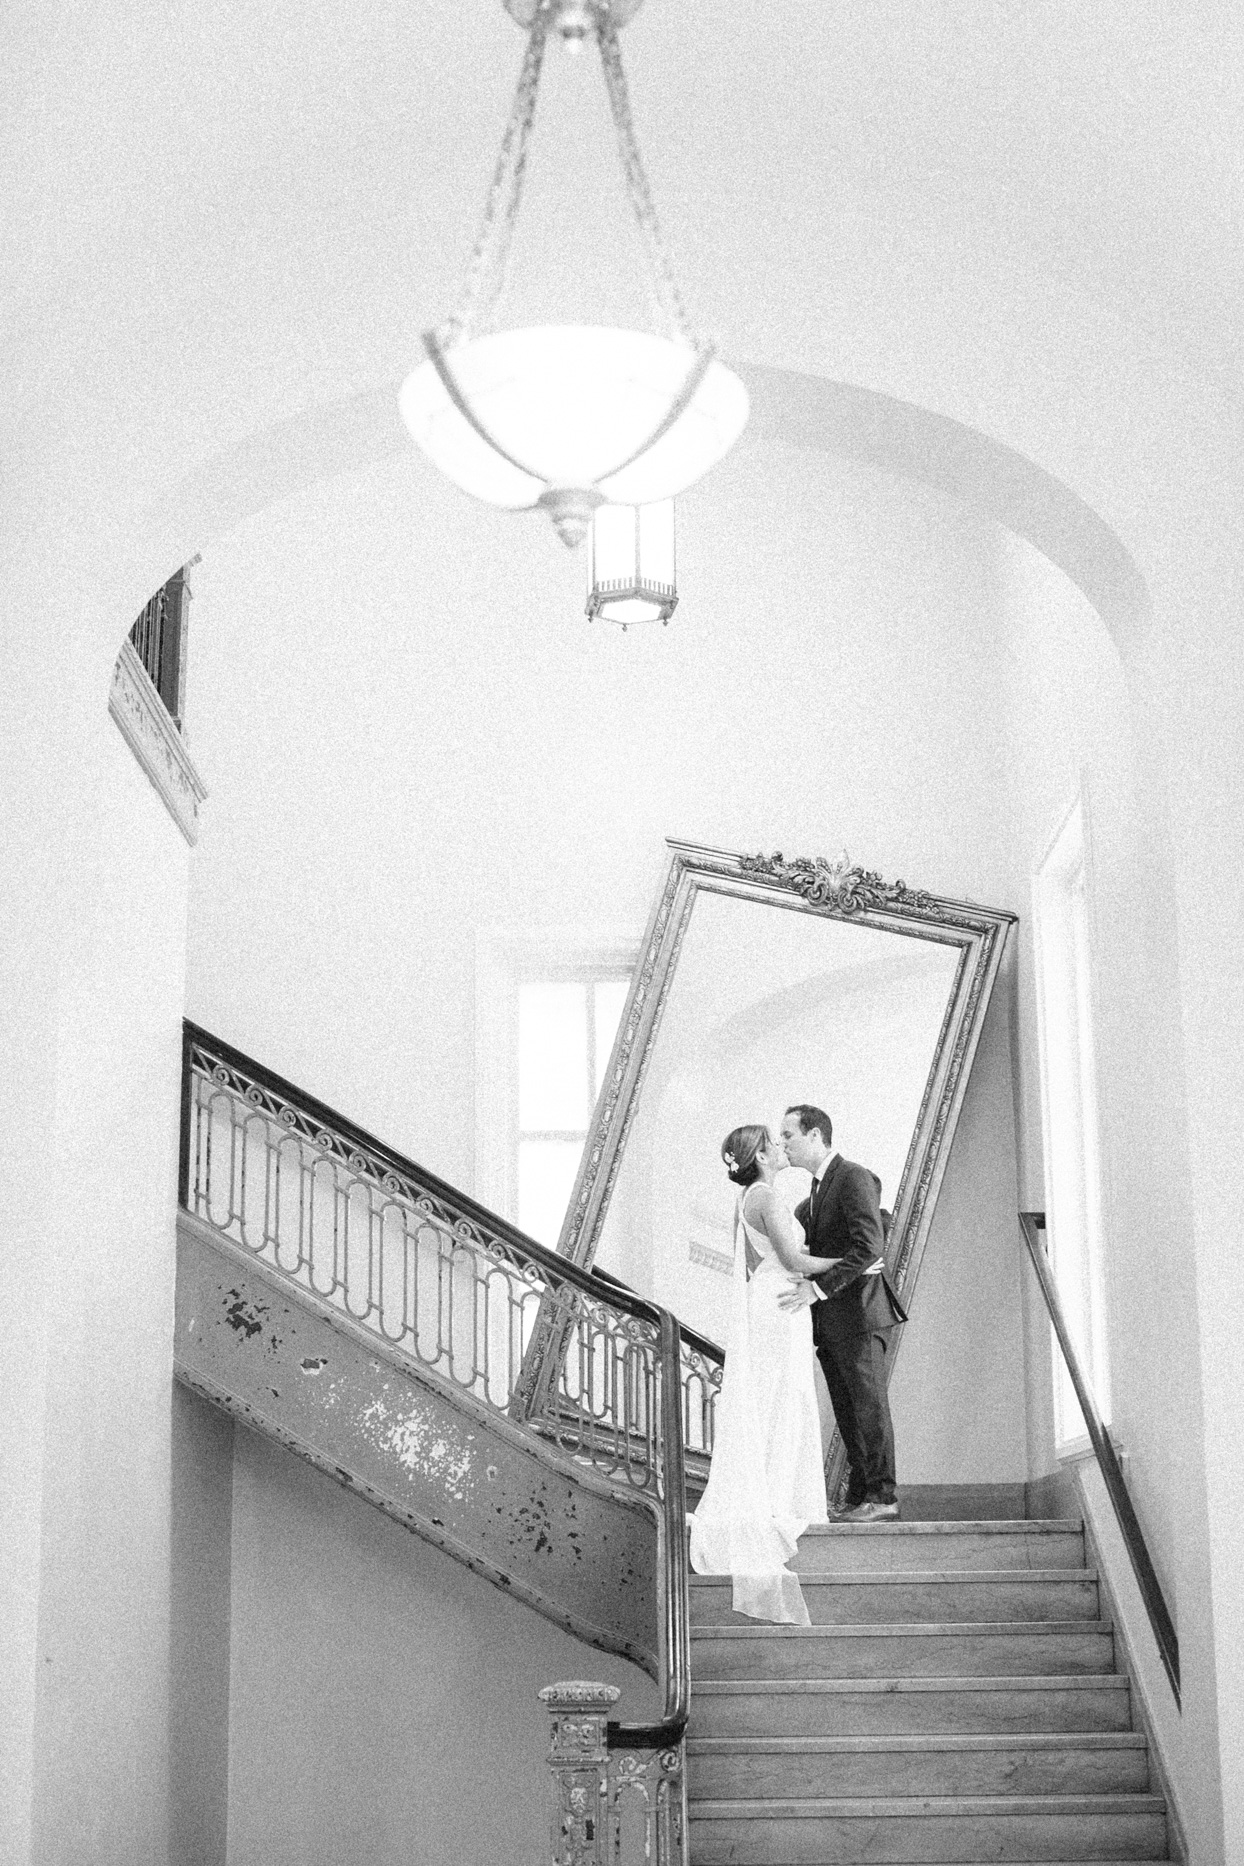 wedding couple kissing on stair with angled mirror behind them